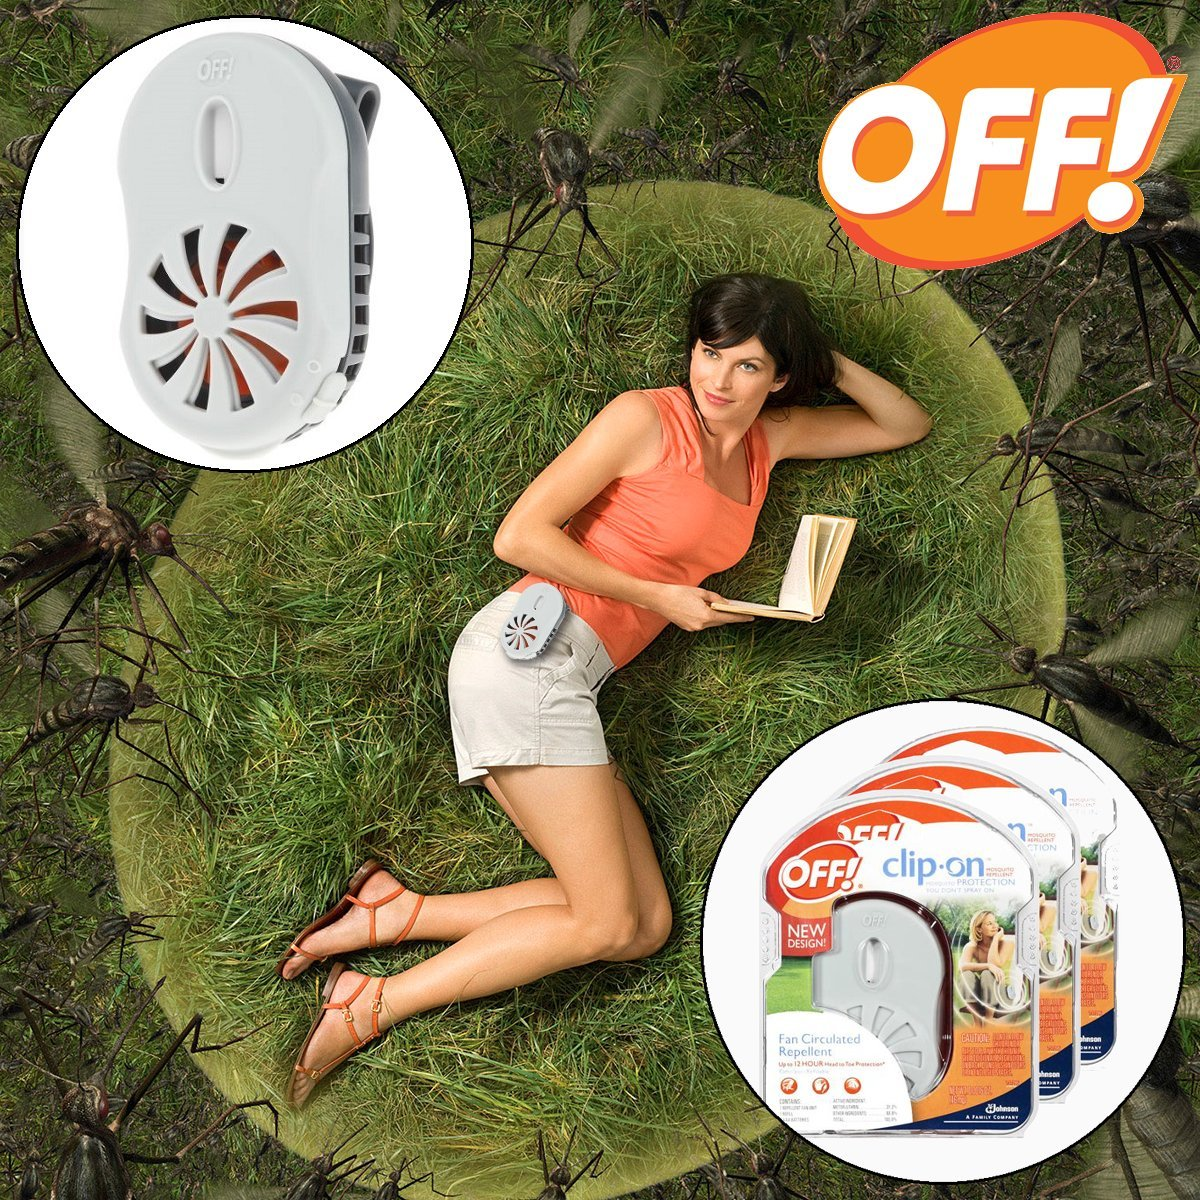 OFF! Mosquito Repellent Clip-On Fan Starter Kit, 3 pack